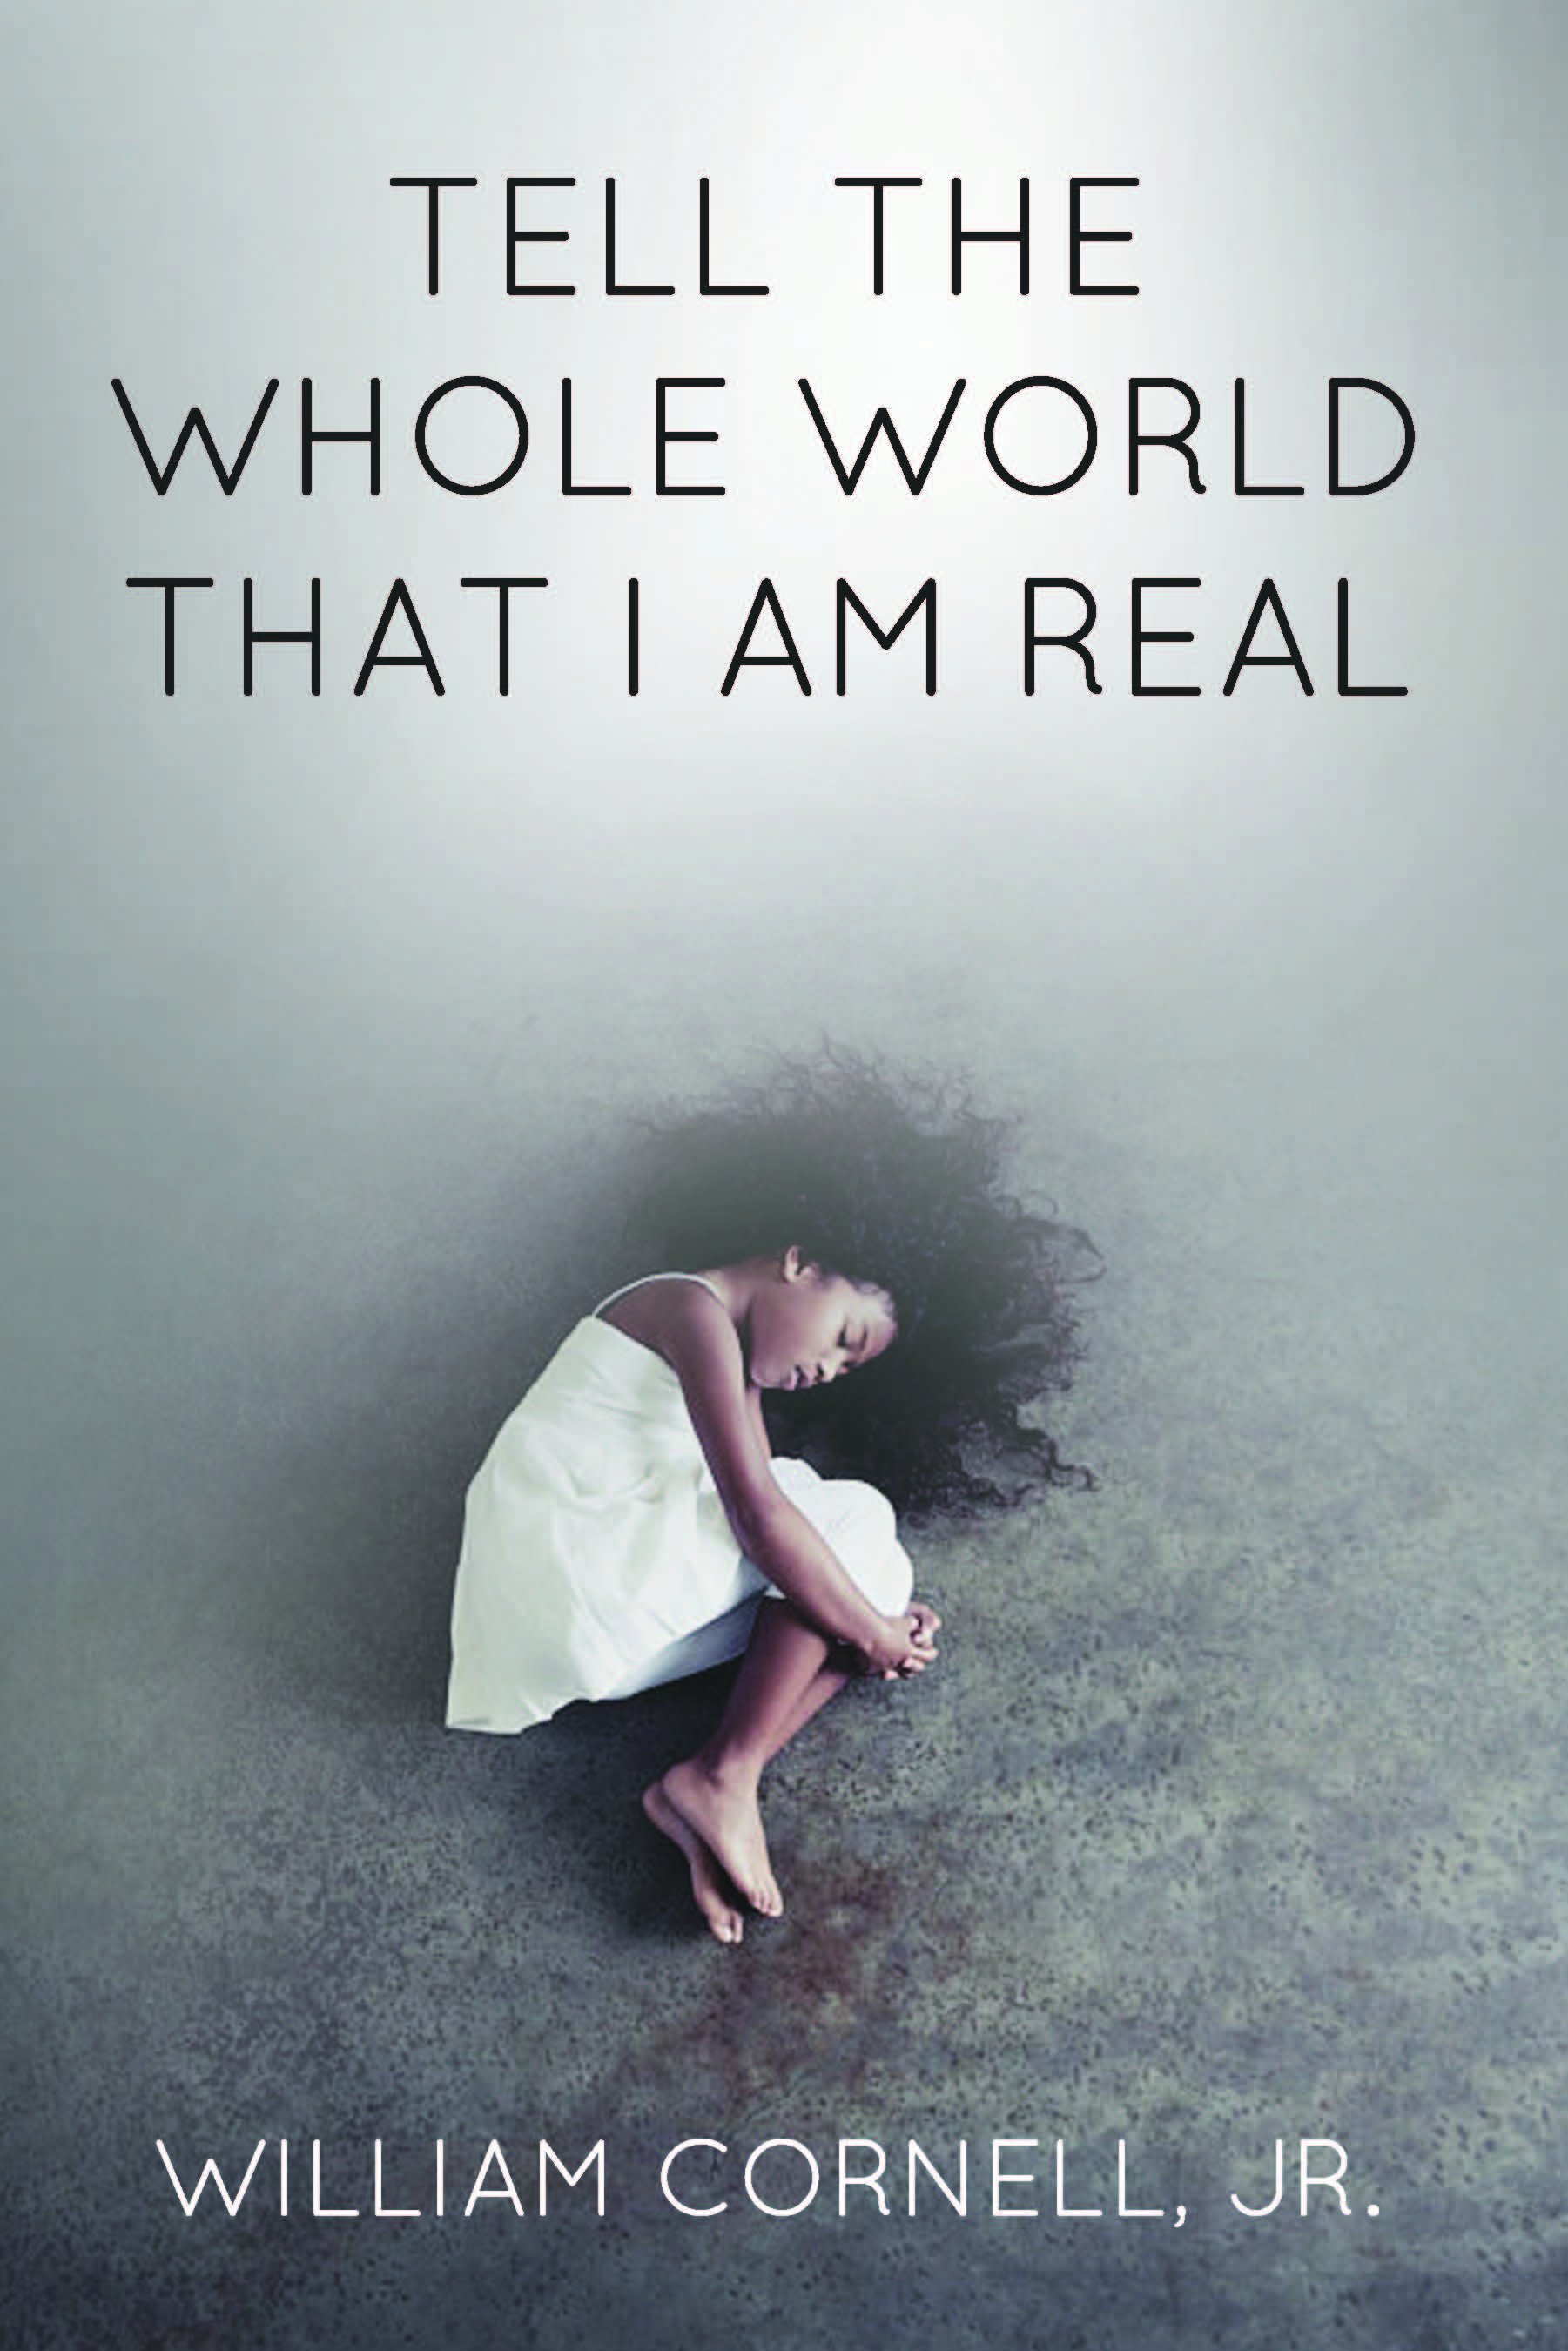 Tell the World That I Am Real